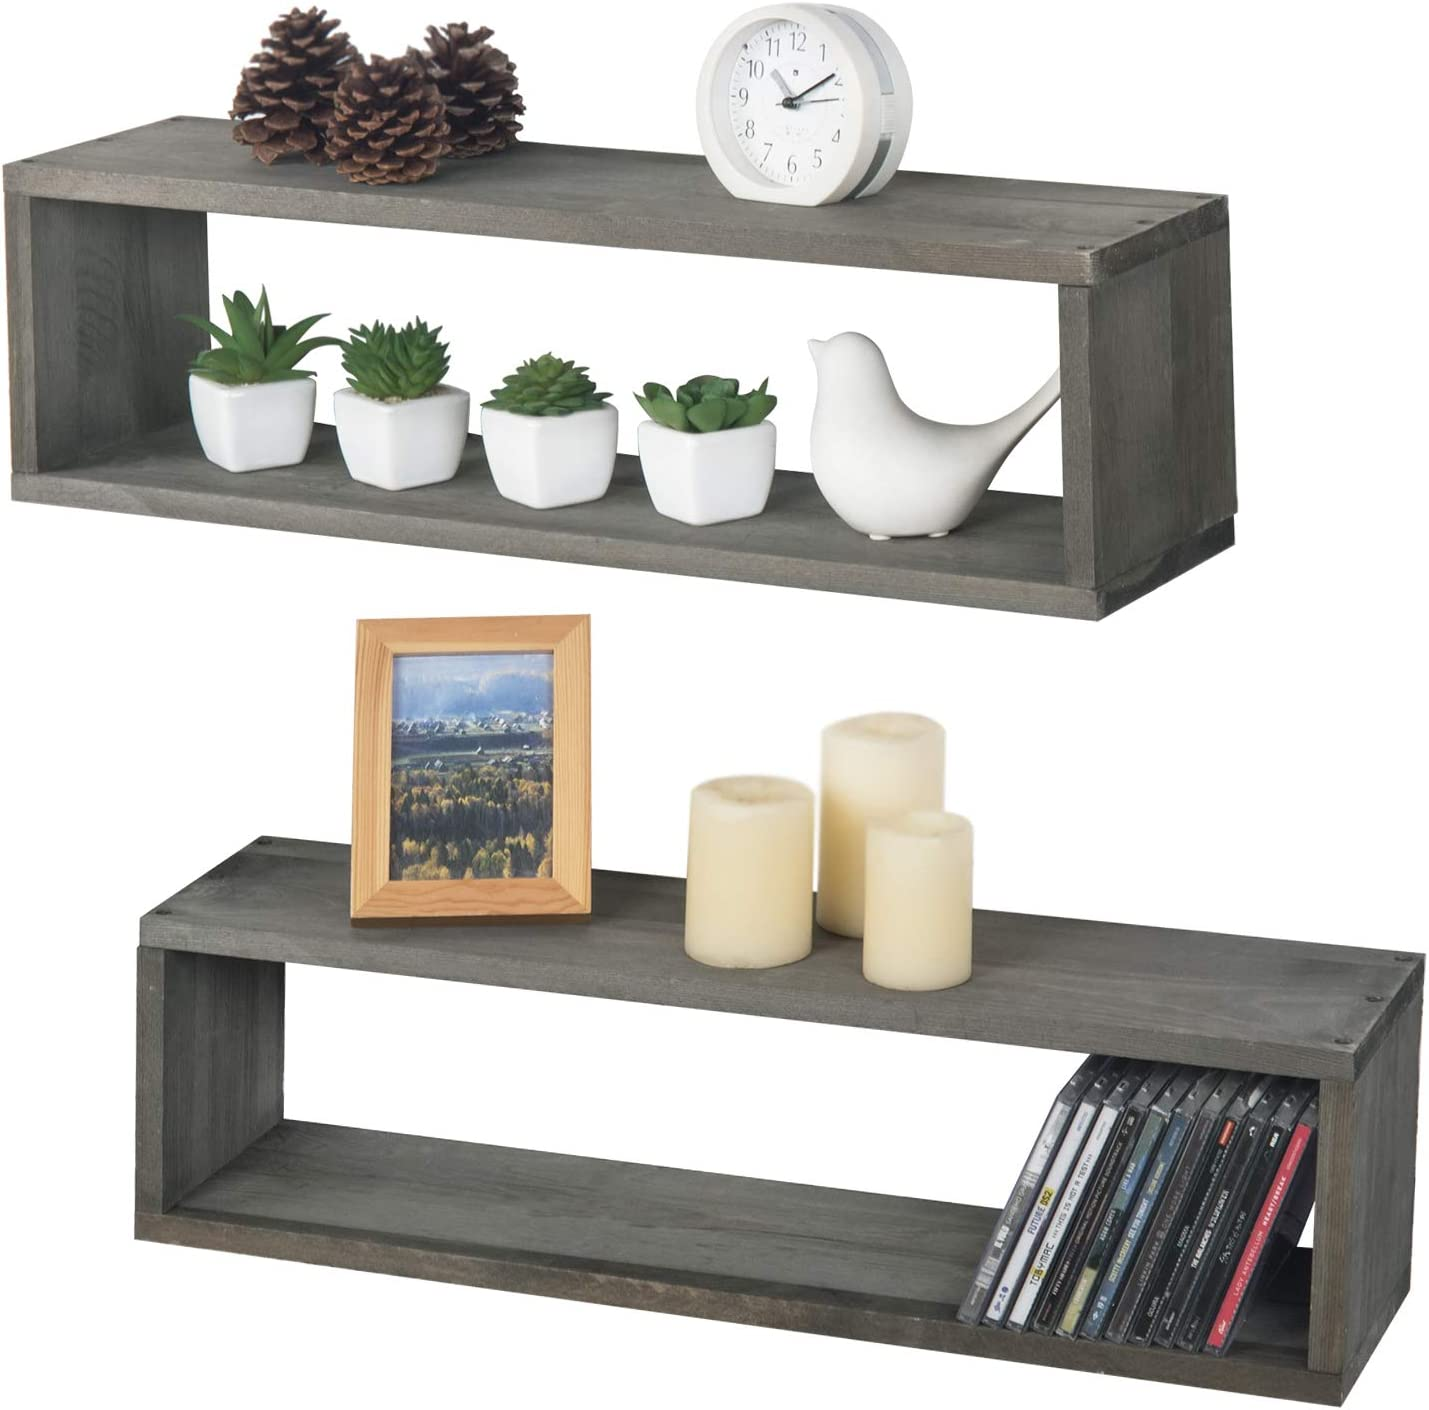 MyGift 24 Inch Wall Mounted Gray Wood Cubby Floating Shelves, Set of 2